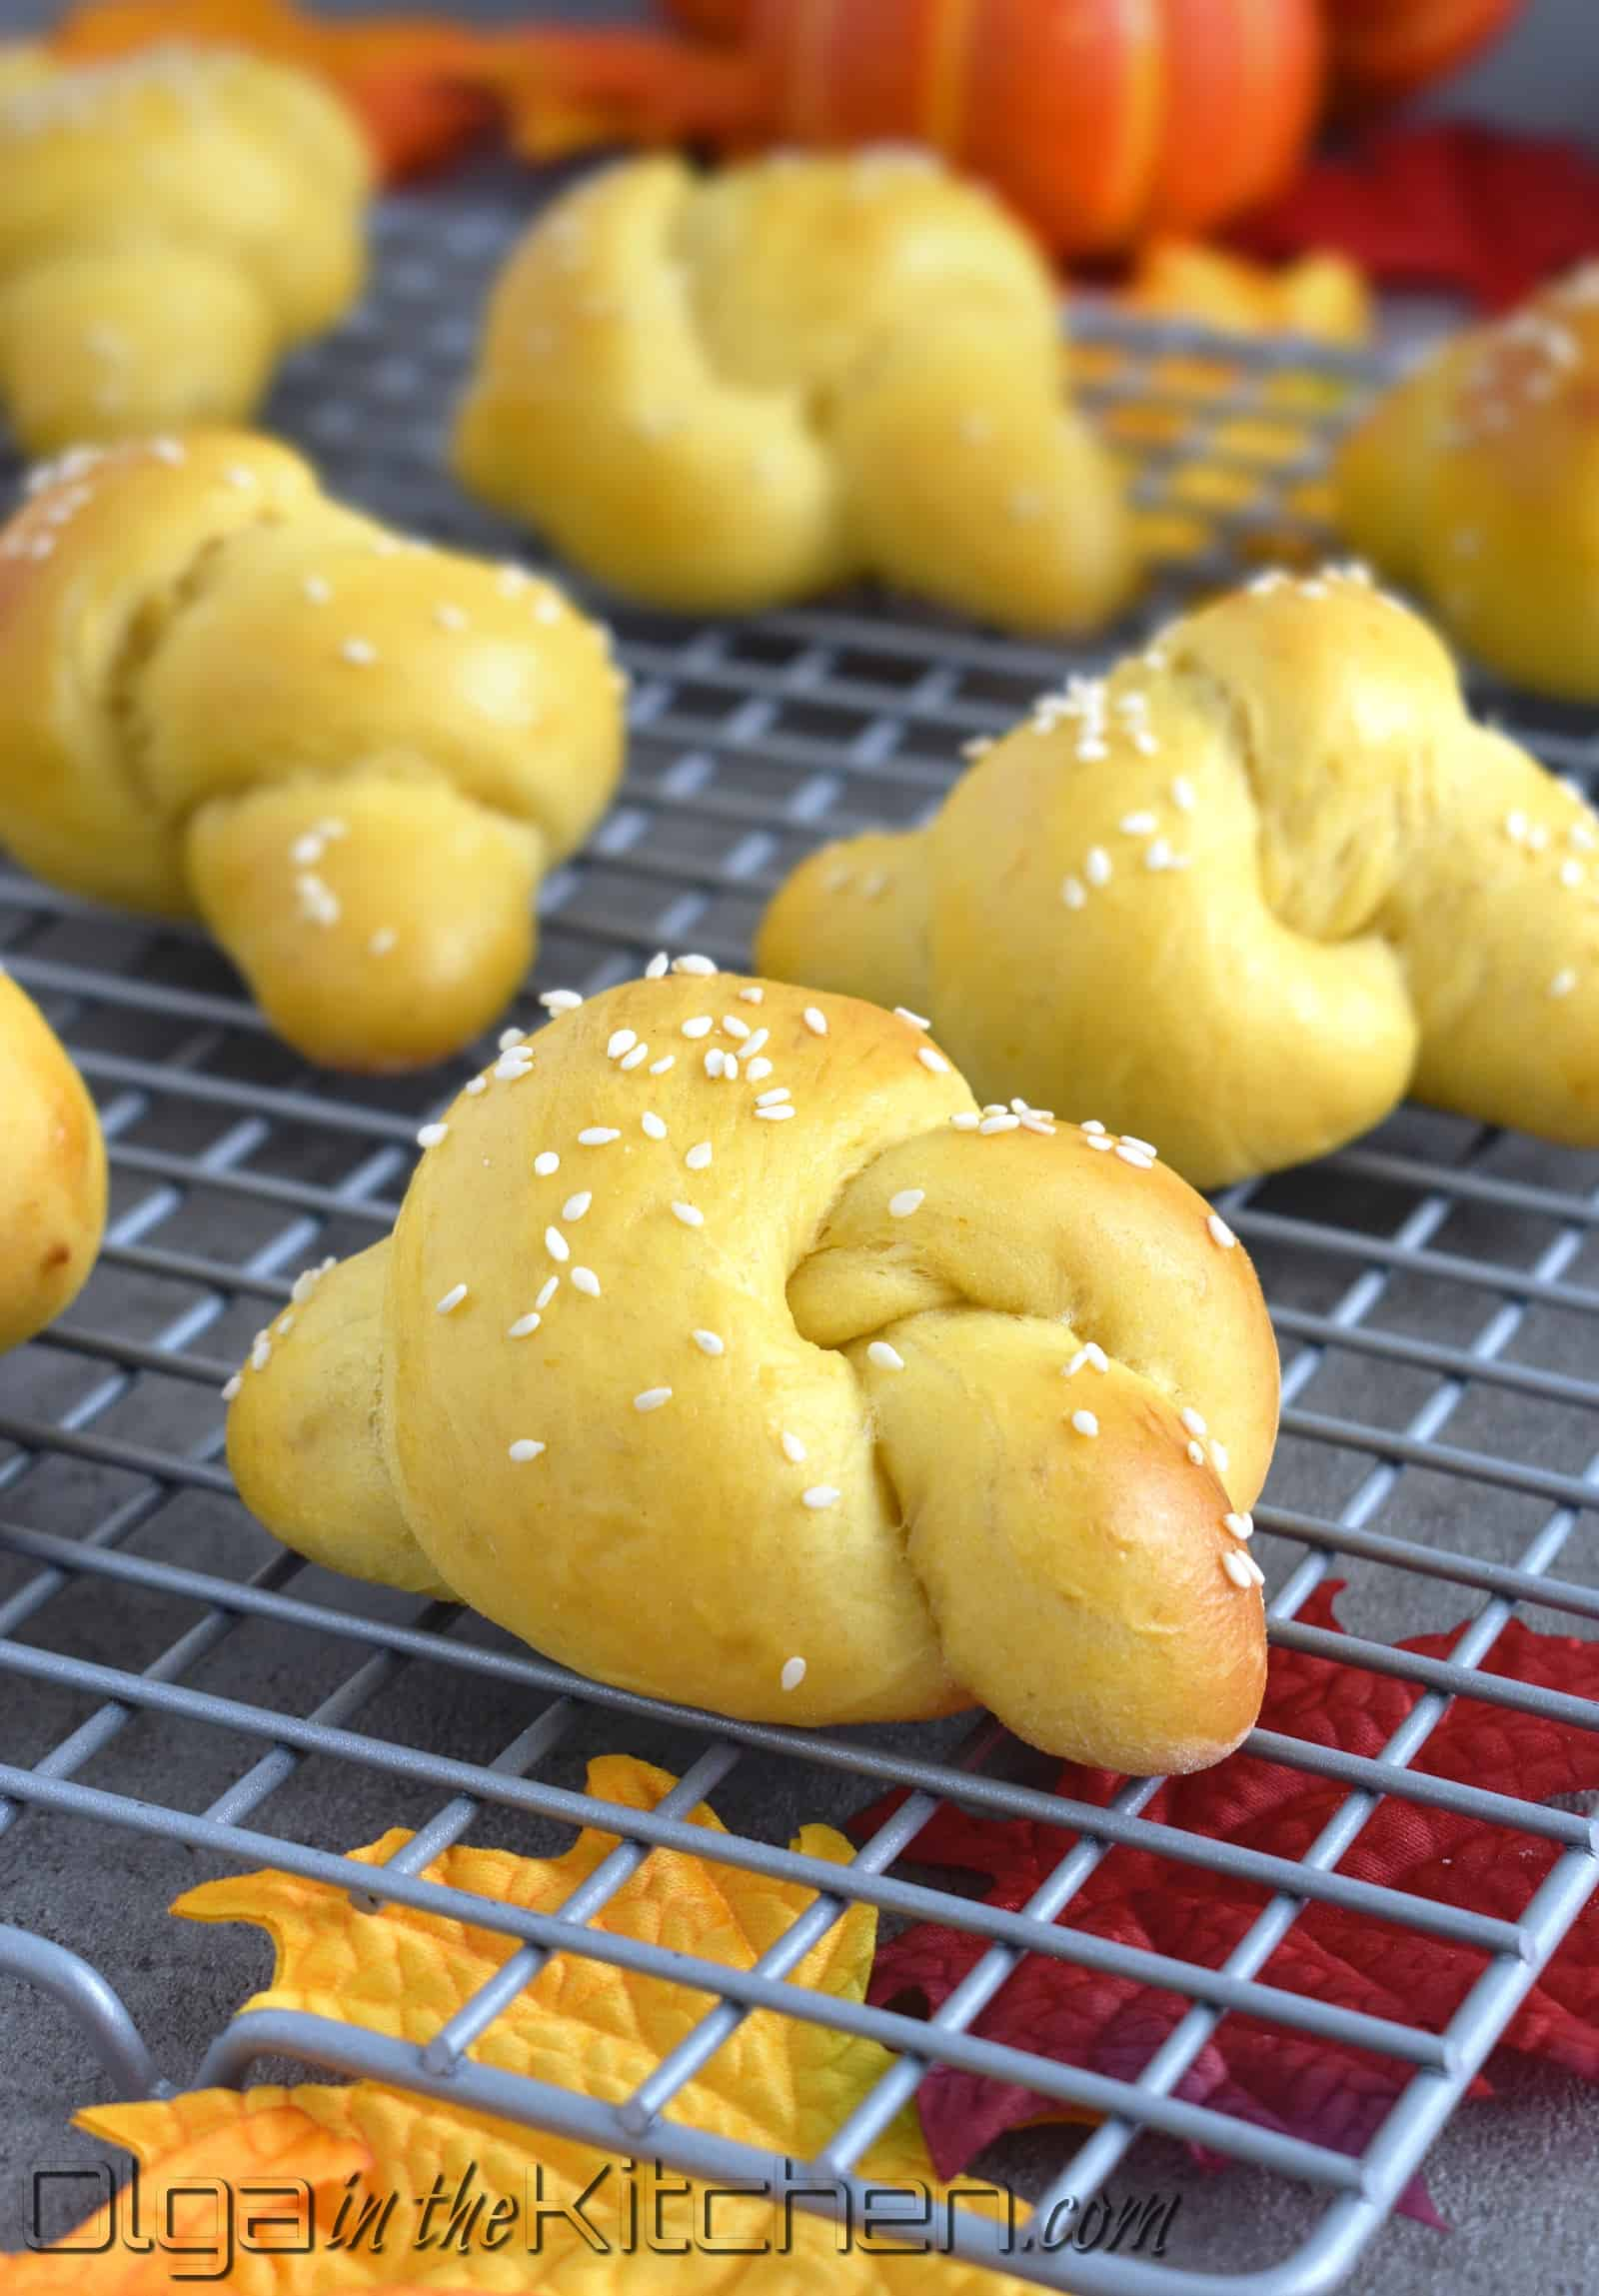 Pumpkin Knots: slightly sweet, moist and light texture, golden in color with a mild pumpkin flavor. These knots will complete any breakfast or afternoon tea.   olgainthekitchen.com